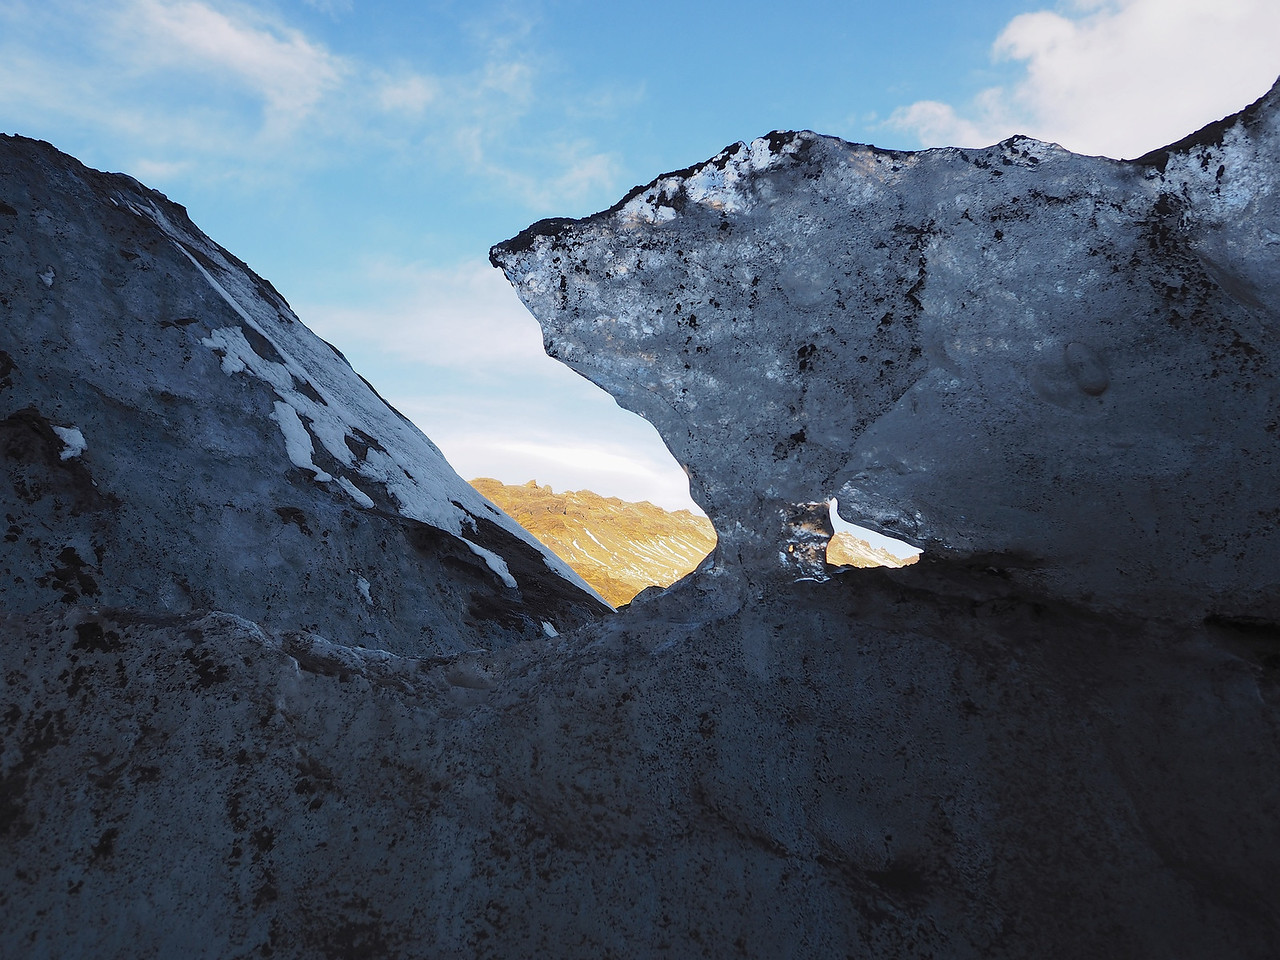 Glacier, Solheimajokull. Olympus E-M1, 12mm m4/3 lens. F3.2, 1/800s, ISO 200. Whilst walking on the glacier came across this chunk of ice wall with a few windows. The ice was caked with black volcanic ash and the bright sky offered a testing dynamic range capture. I focused on the green land/mountain using the touch lcd screen, another great feature allowing to compose and focus together.